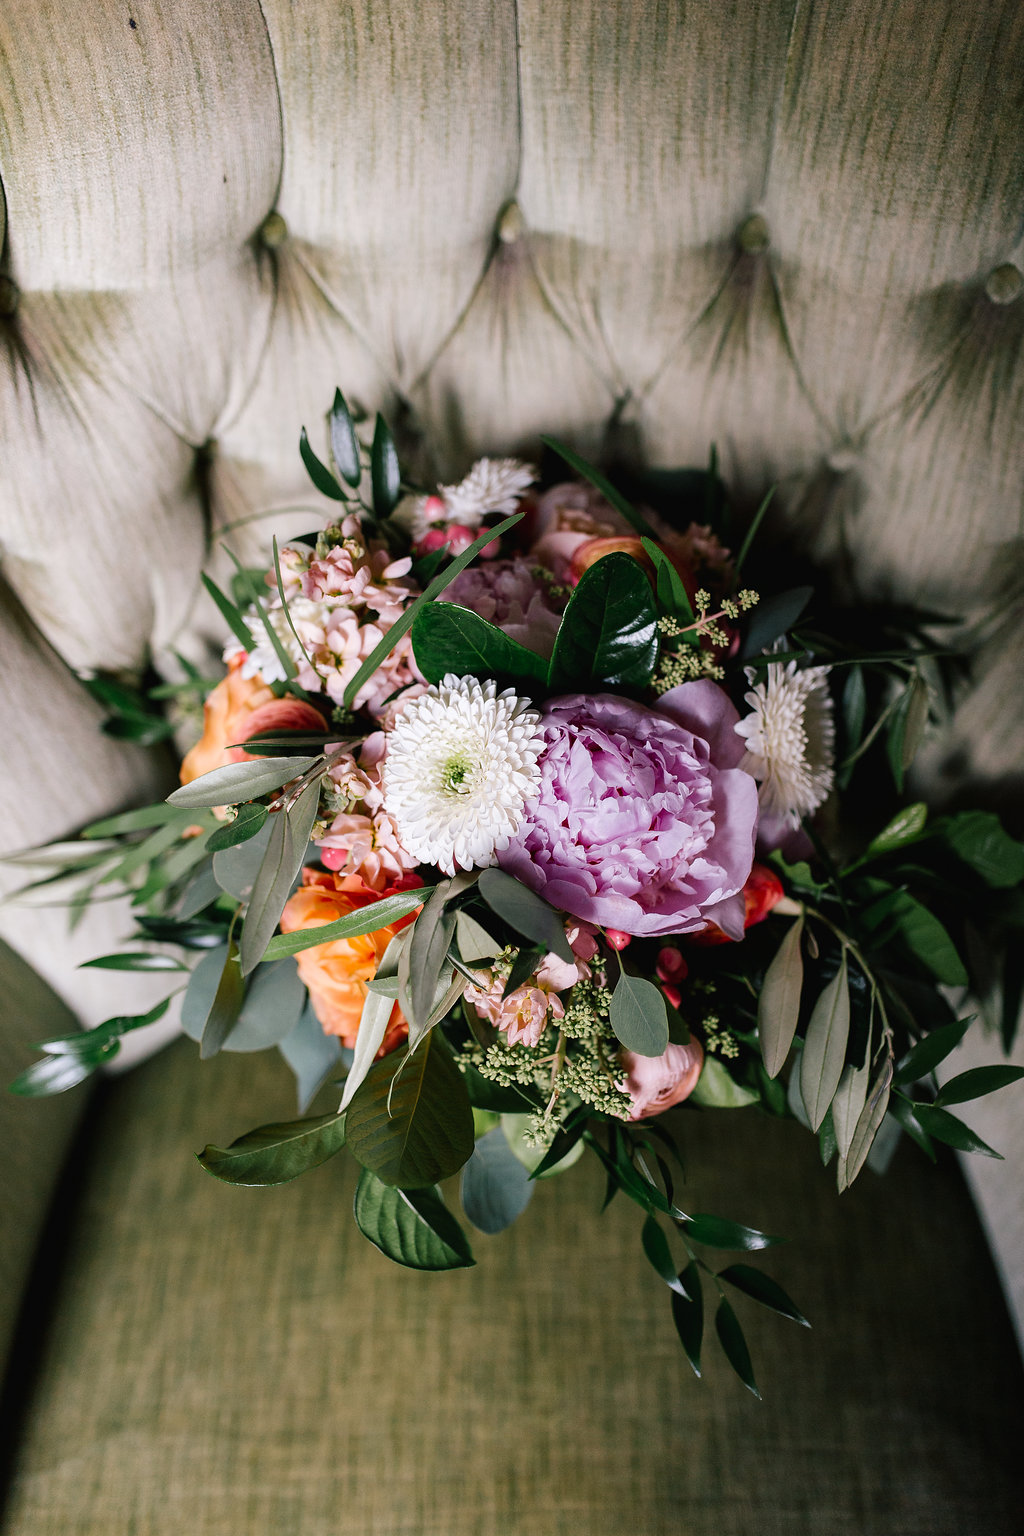 Jade and Seth Bloom Lake Barn wedding | Allison Hopperstad Photography | A Vintage Touch Weddings planning nad design | Day of Coordinating by Sixpence Events | purple peony with pink stock and white mum bridal bouquet